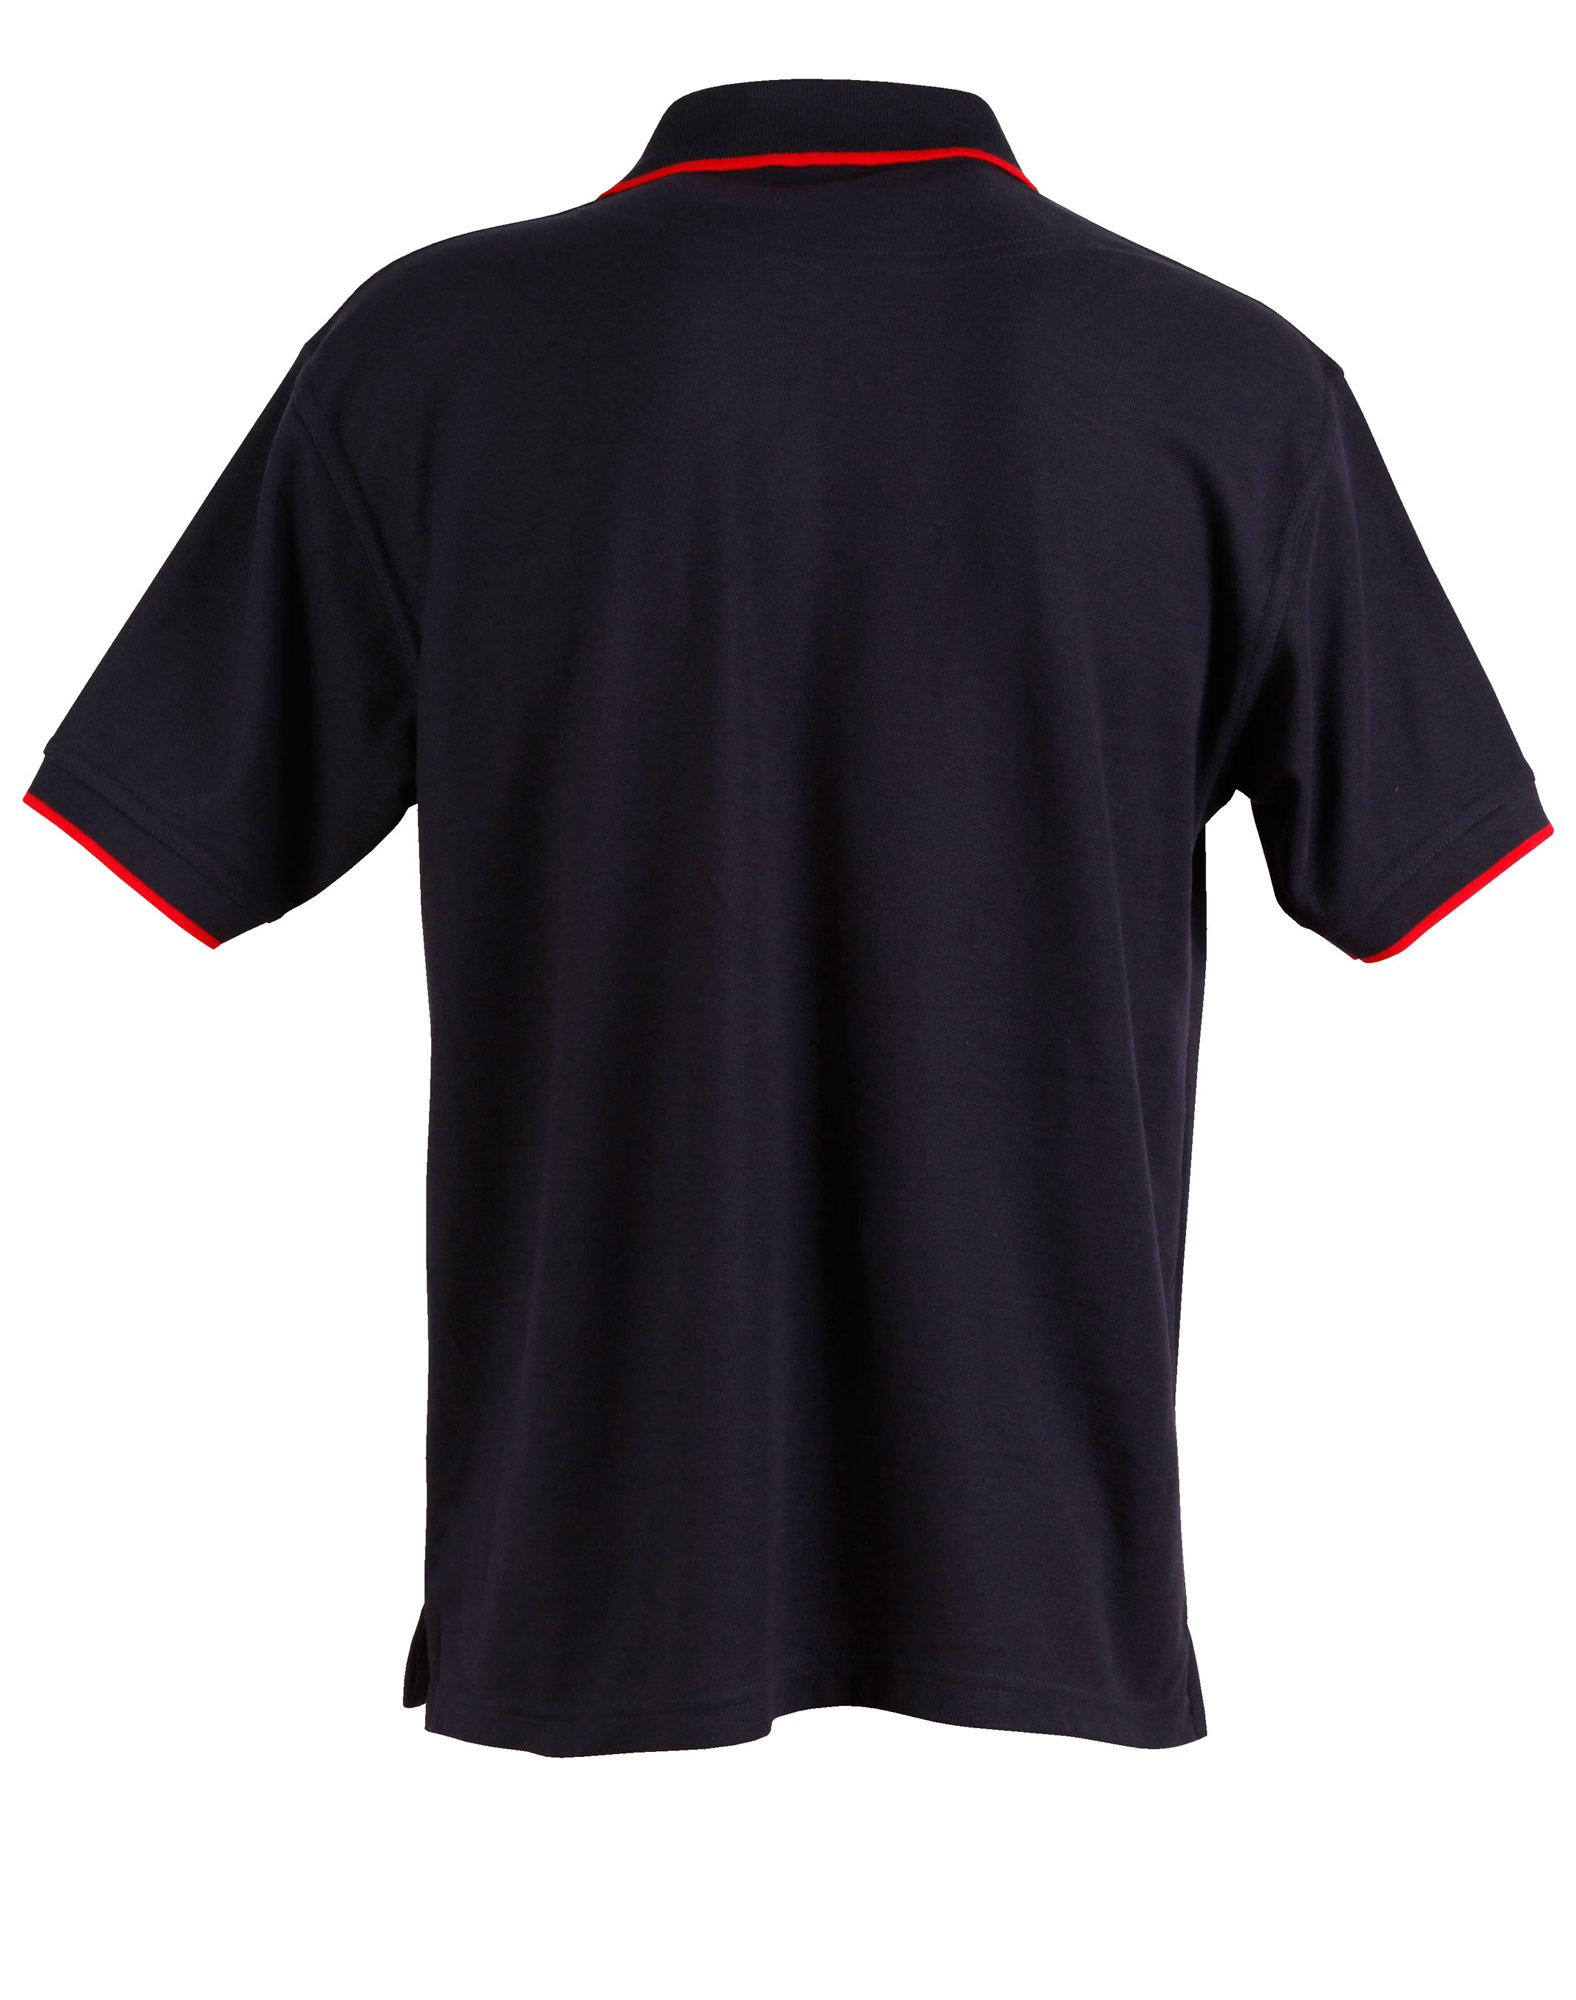 https://s3-ap-southeast-1.amazonaws.com/ws-imgs/POLOSHIRTS/PS08_NavyRed_Back_l.jpg